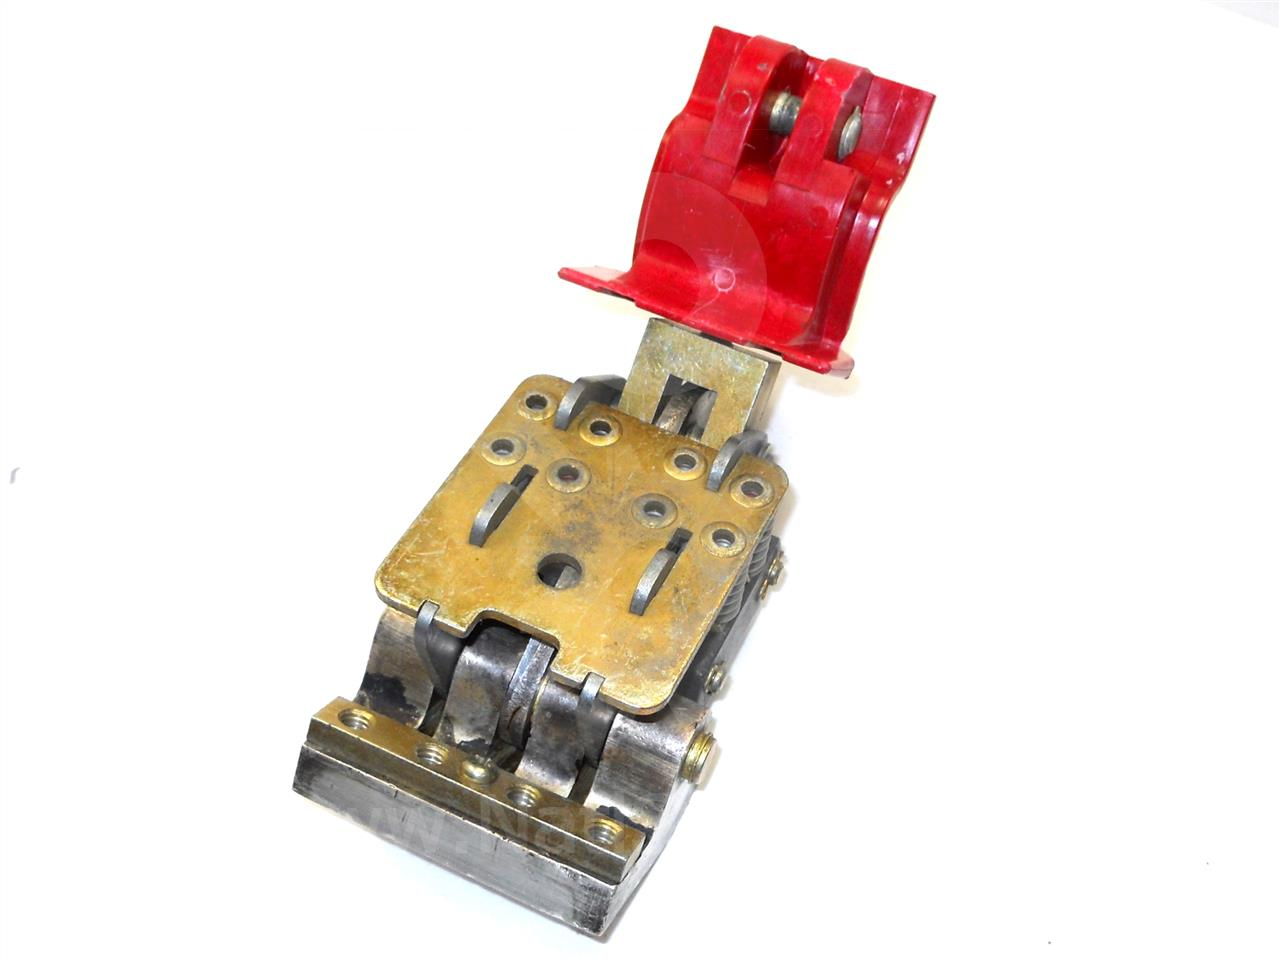 Abb Ite Bbc Ite Red Moving Contact Assembly